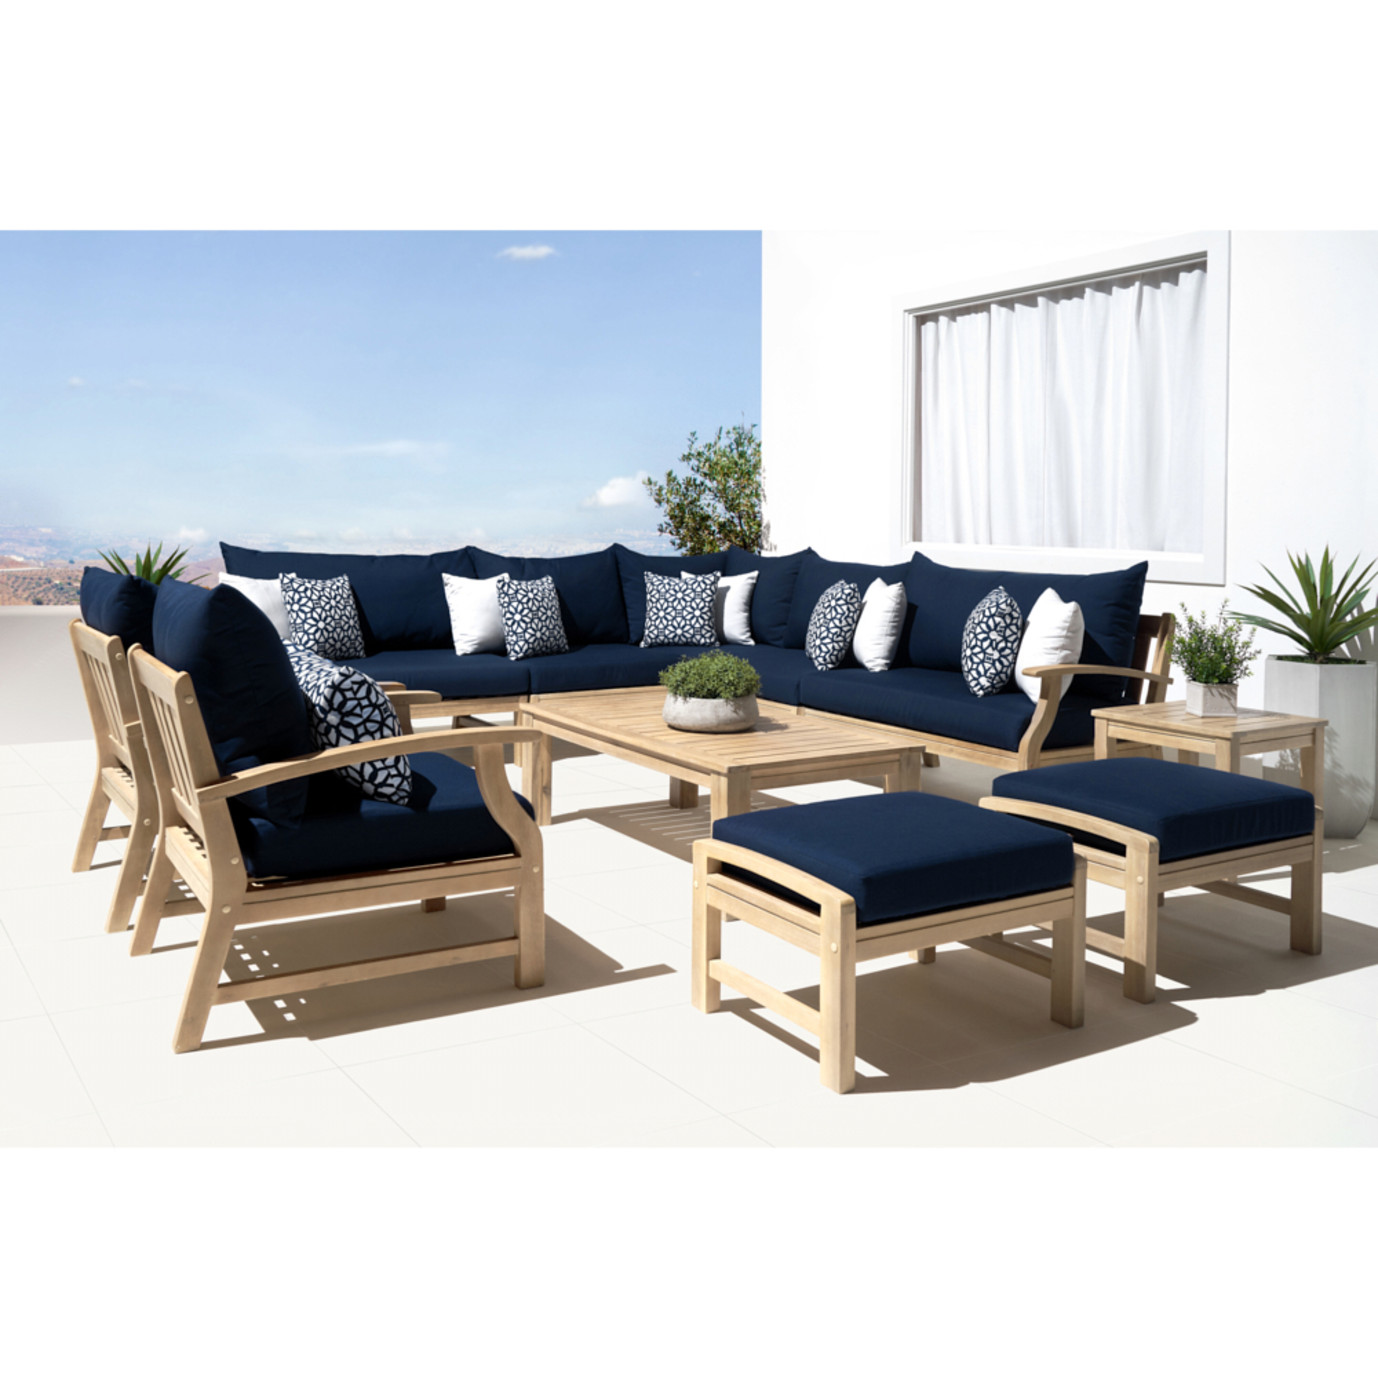 Kooper 11 Piece Estate Collection - Navy Blue